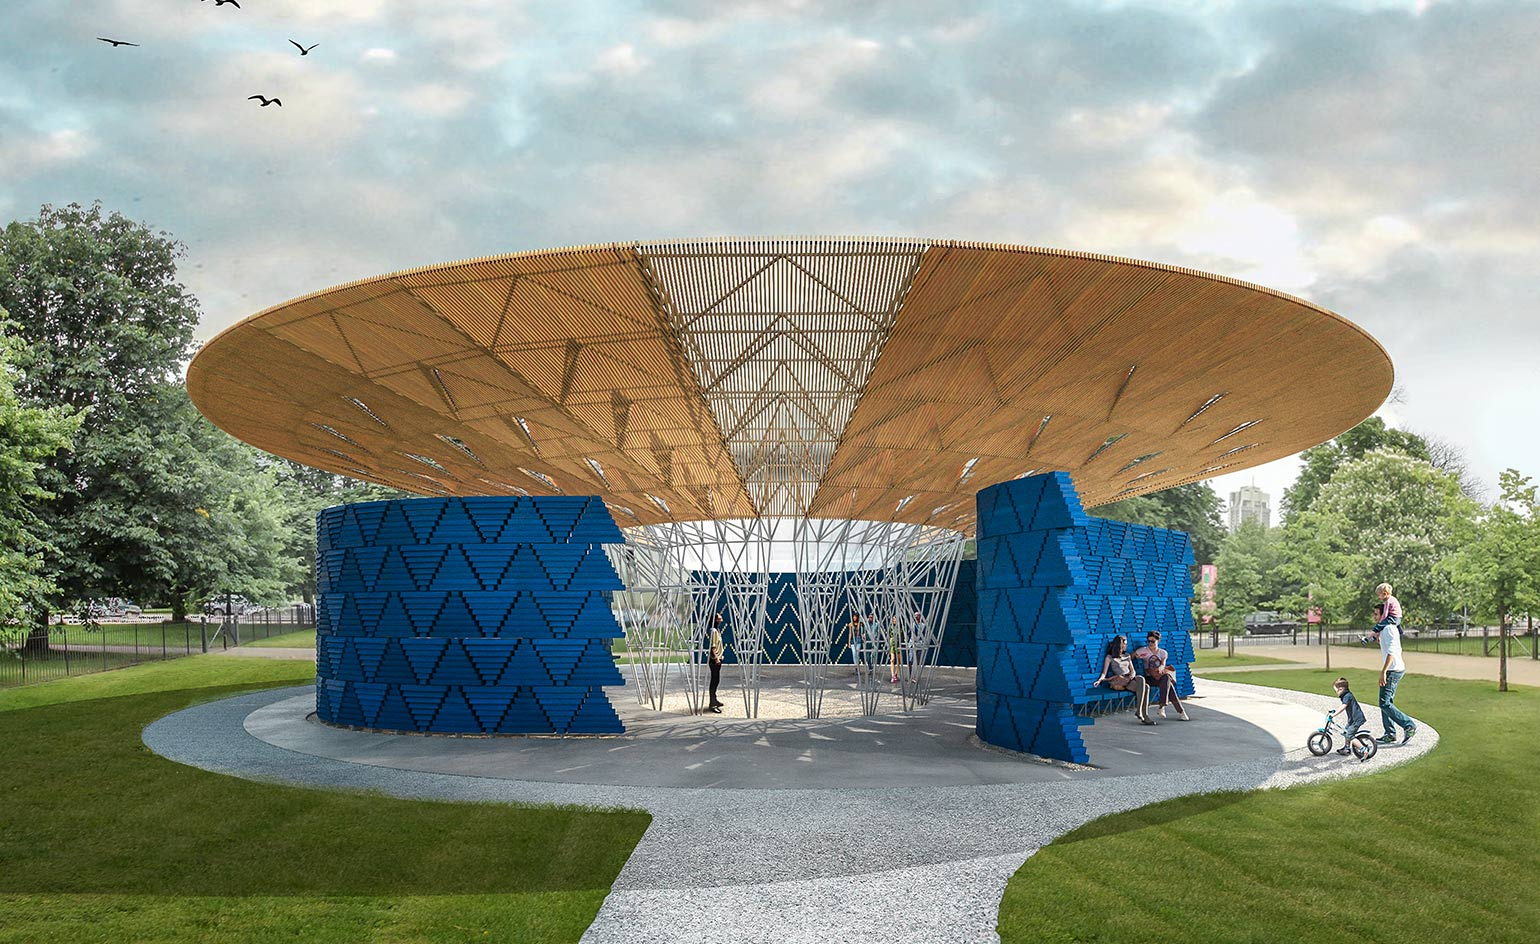 Francis k r to design the 2017 serpentine gallery for Pavilion architecture design